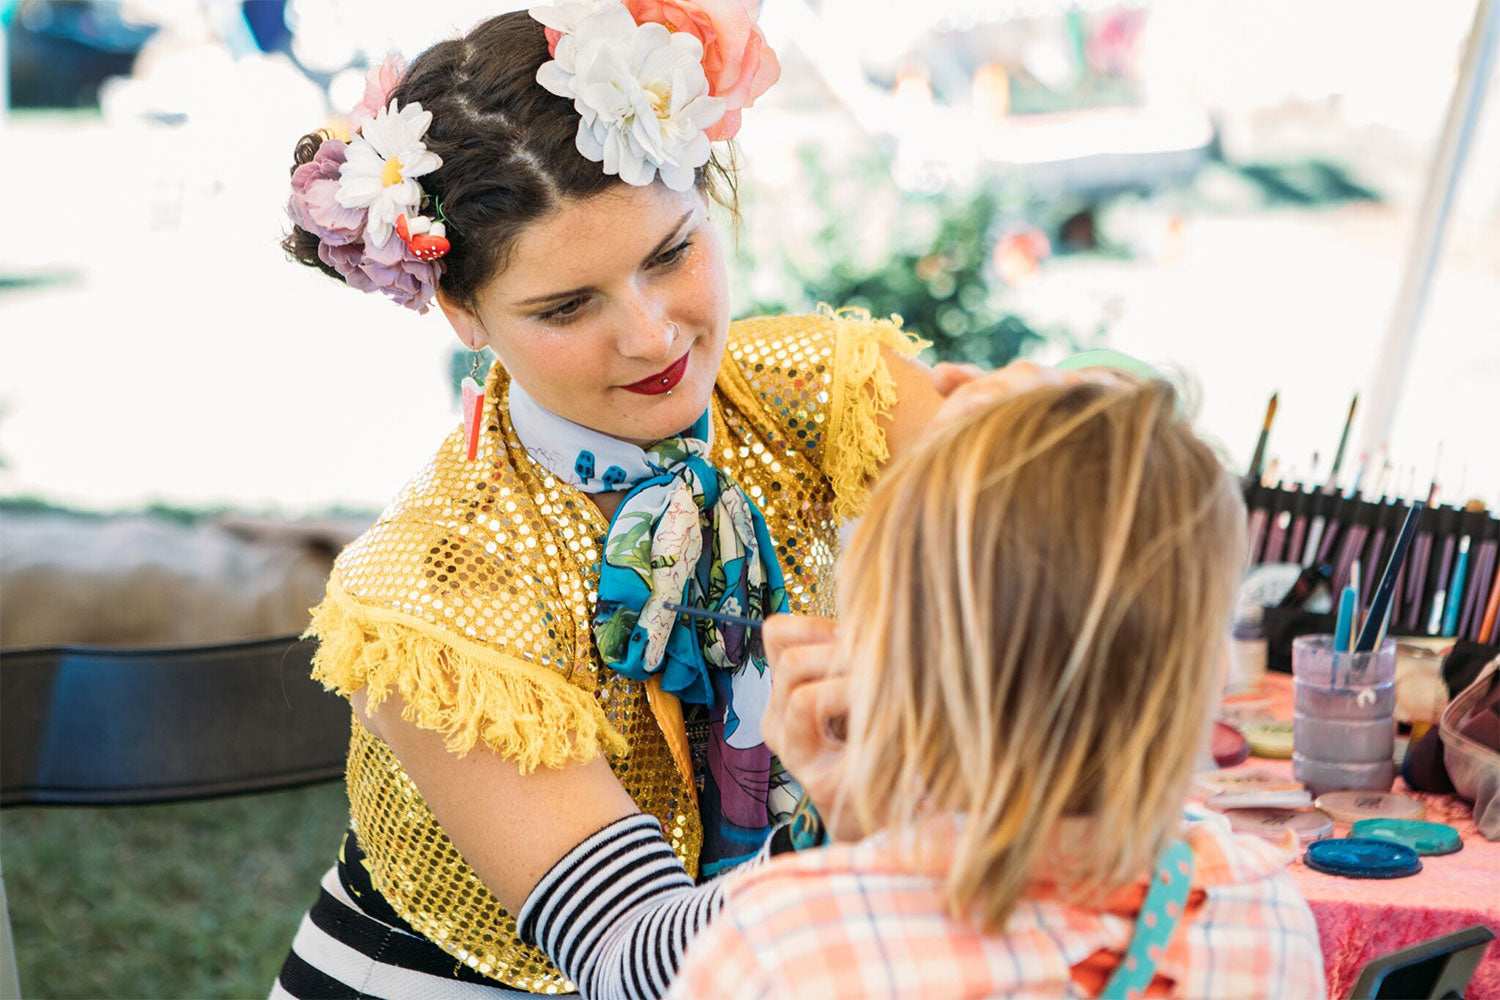 Face painting and glitter galore at Little Splendour